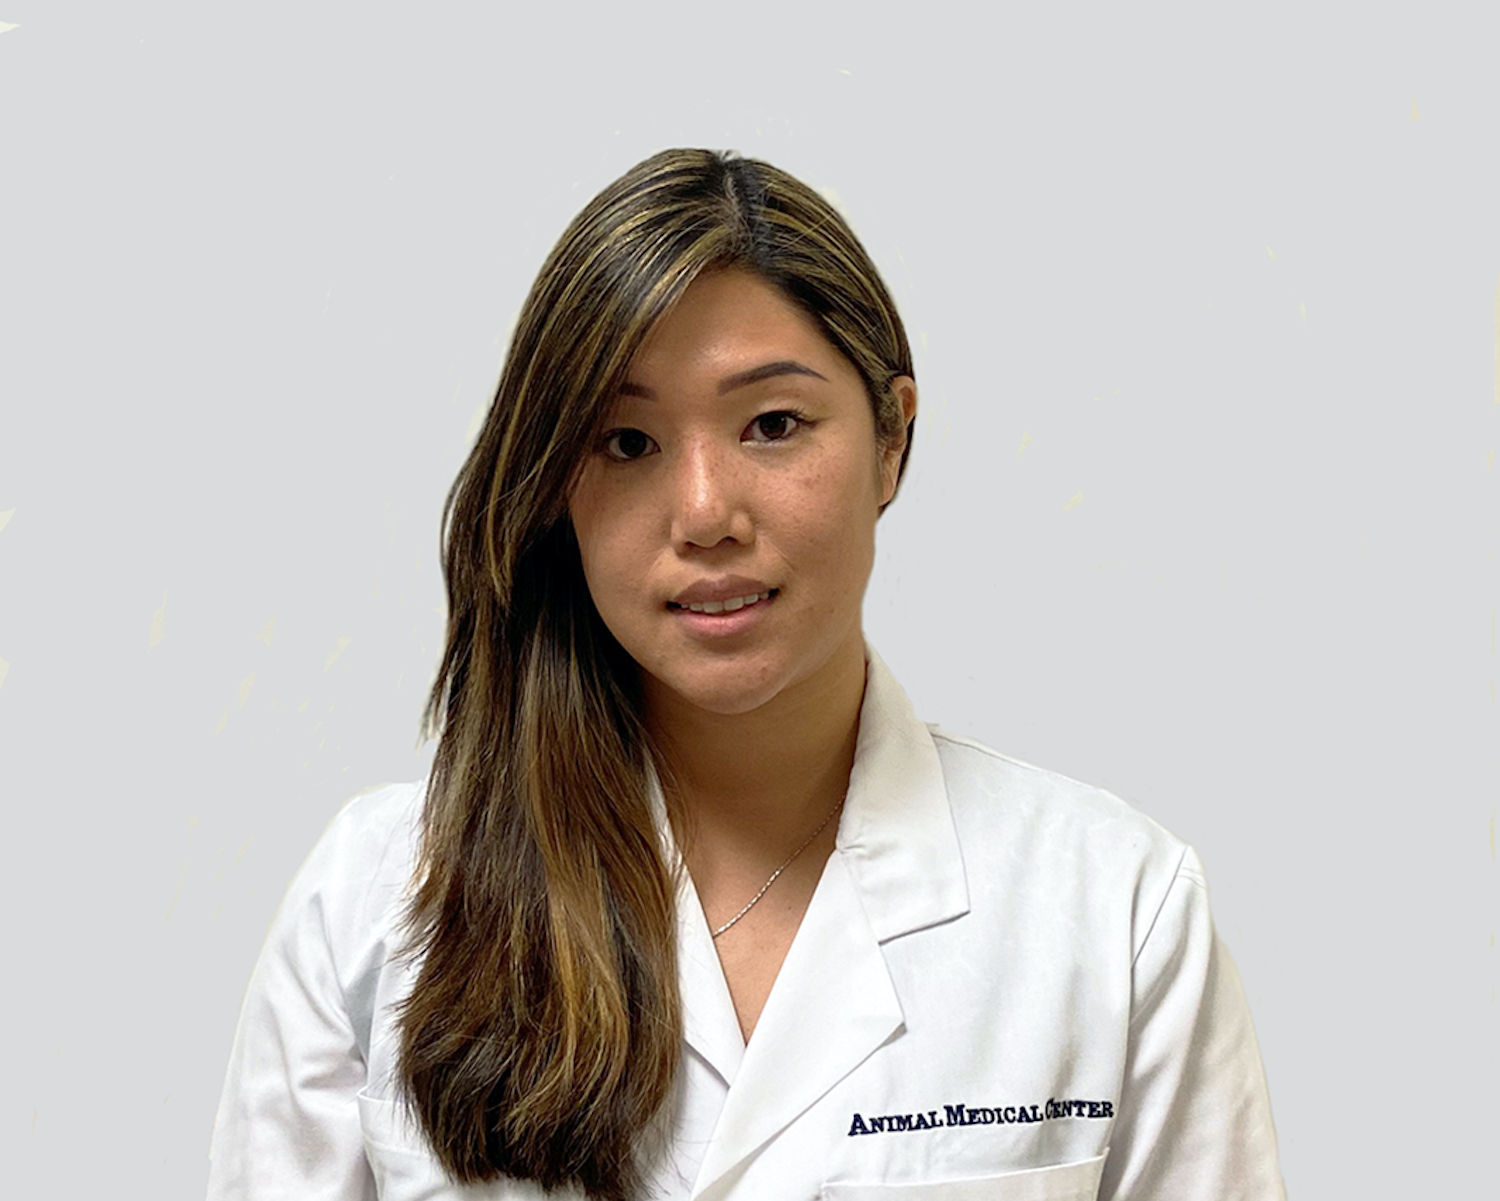 Dr. Samantha Wong of the Animal Medical Center in New York City